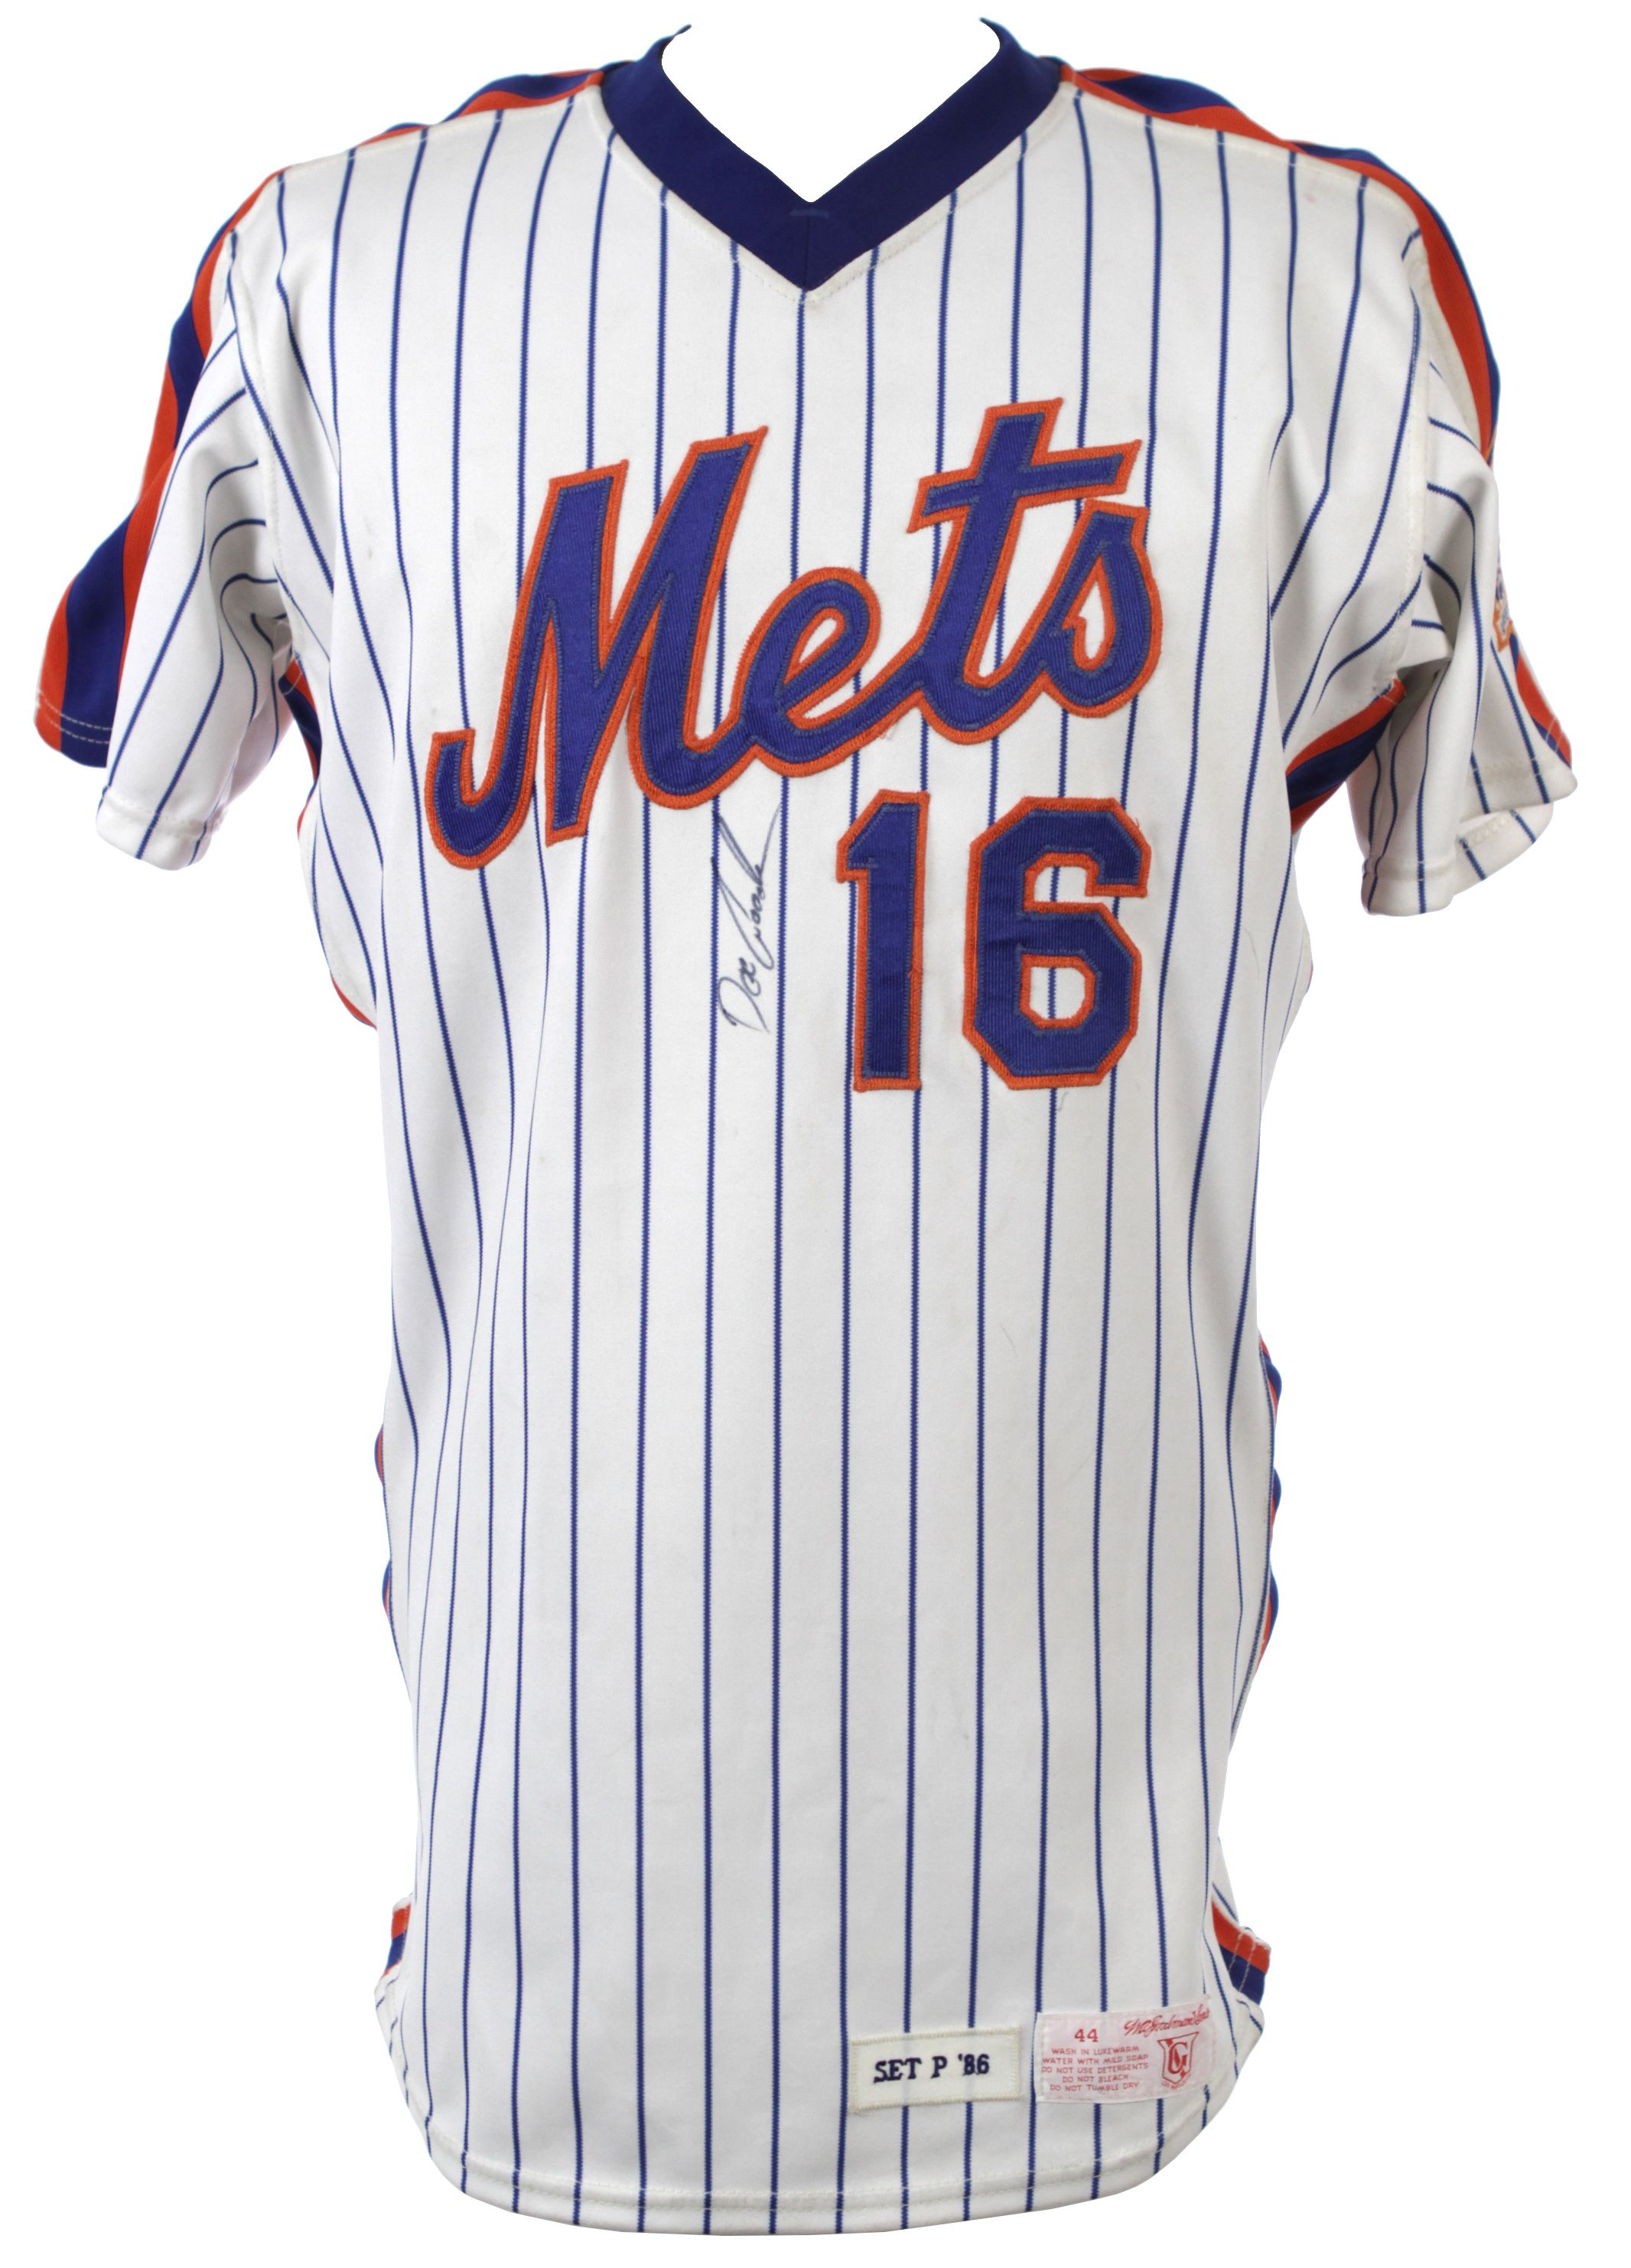 a32510ccb8a Lot Detail - 1986 Dwight Gooden New York Mets Signed Game Worn Home ...